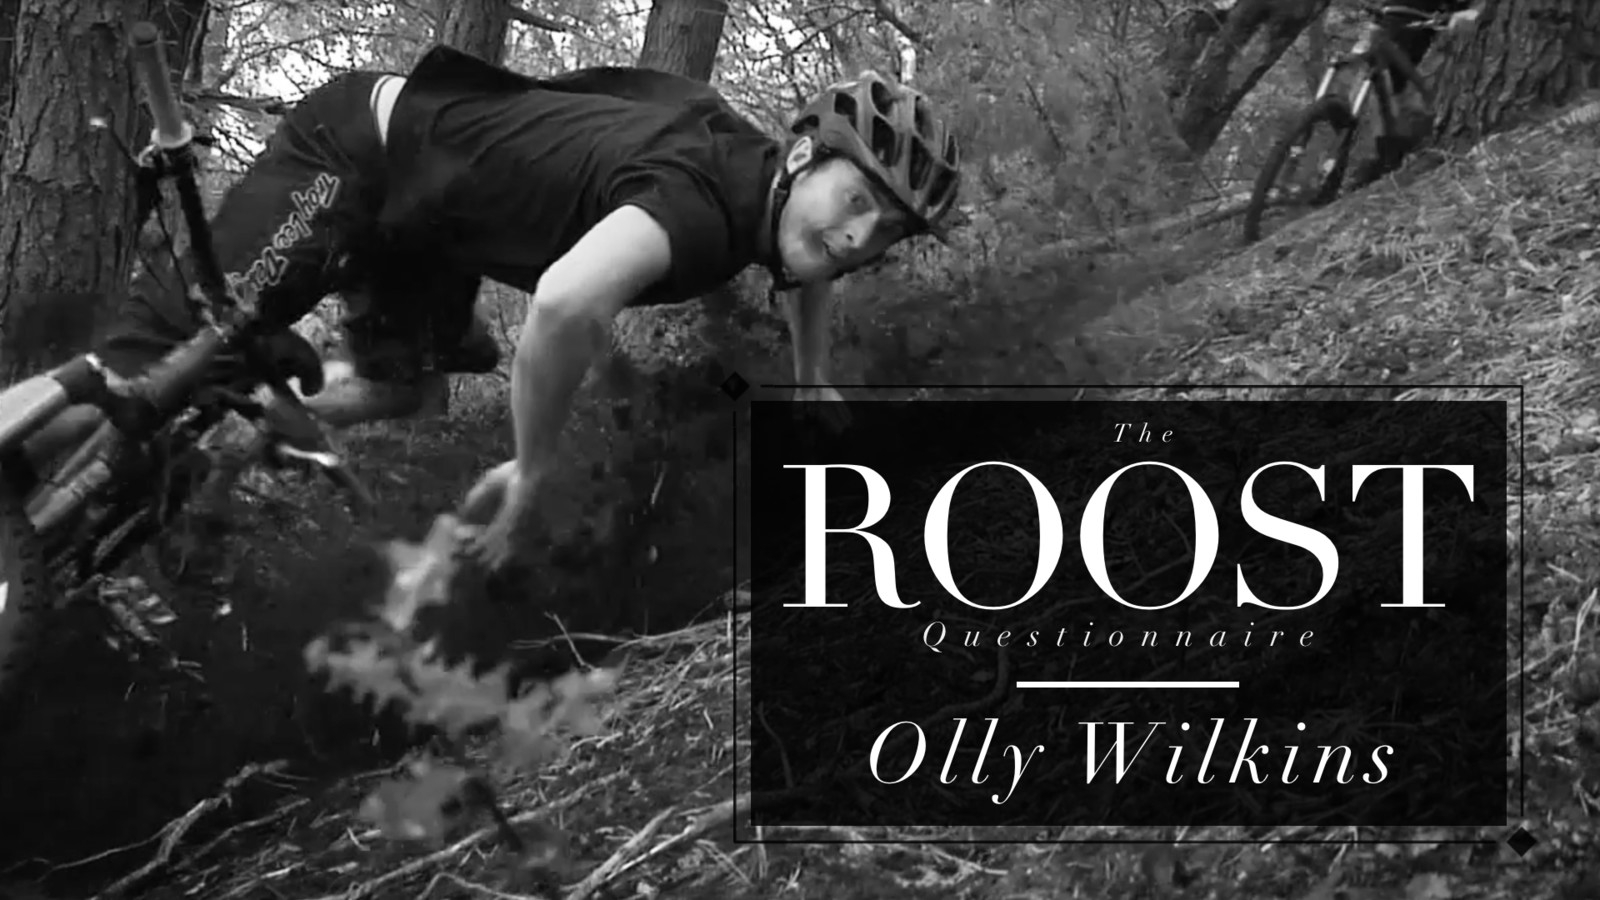 The ROOST Questionnaire #7, Olly Wilkins